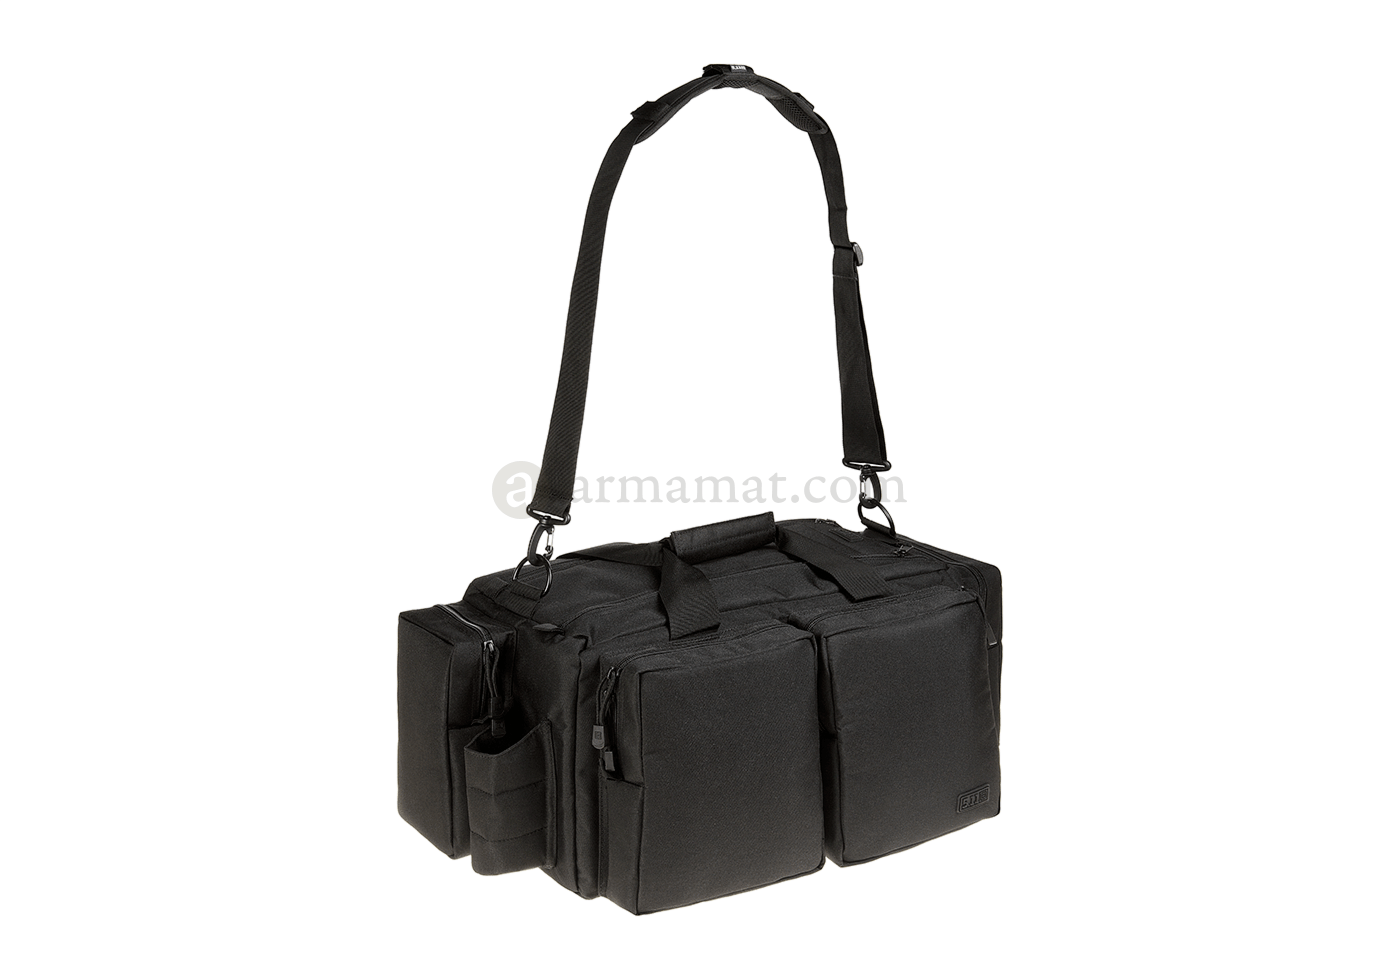 Range Ready Bag Black 5 11 Tactical Bags Cases Load Bearing Armamat Online